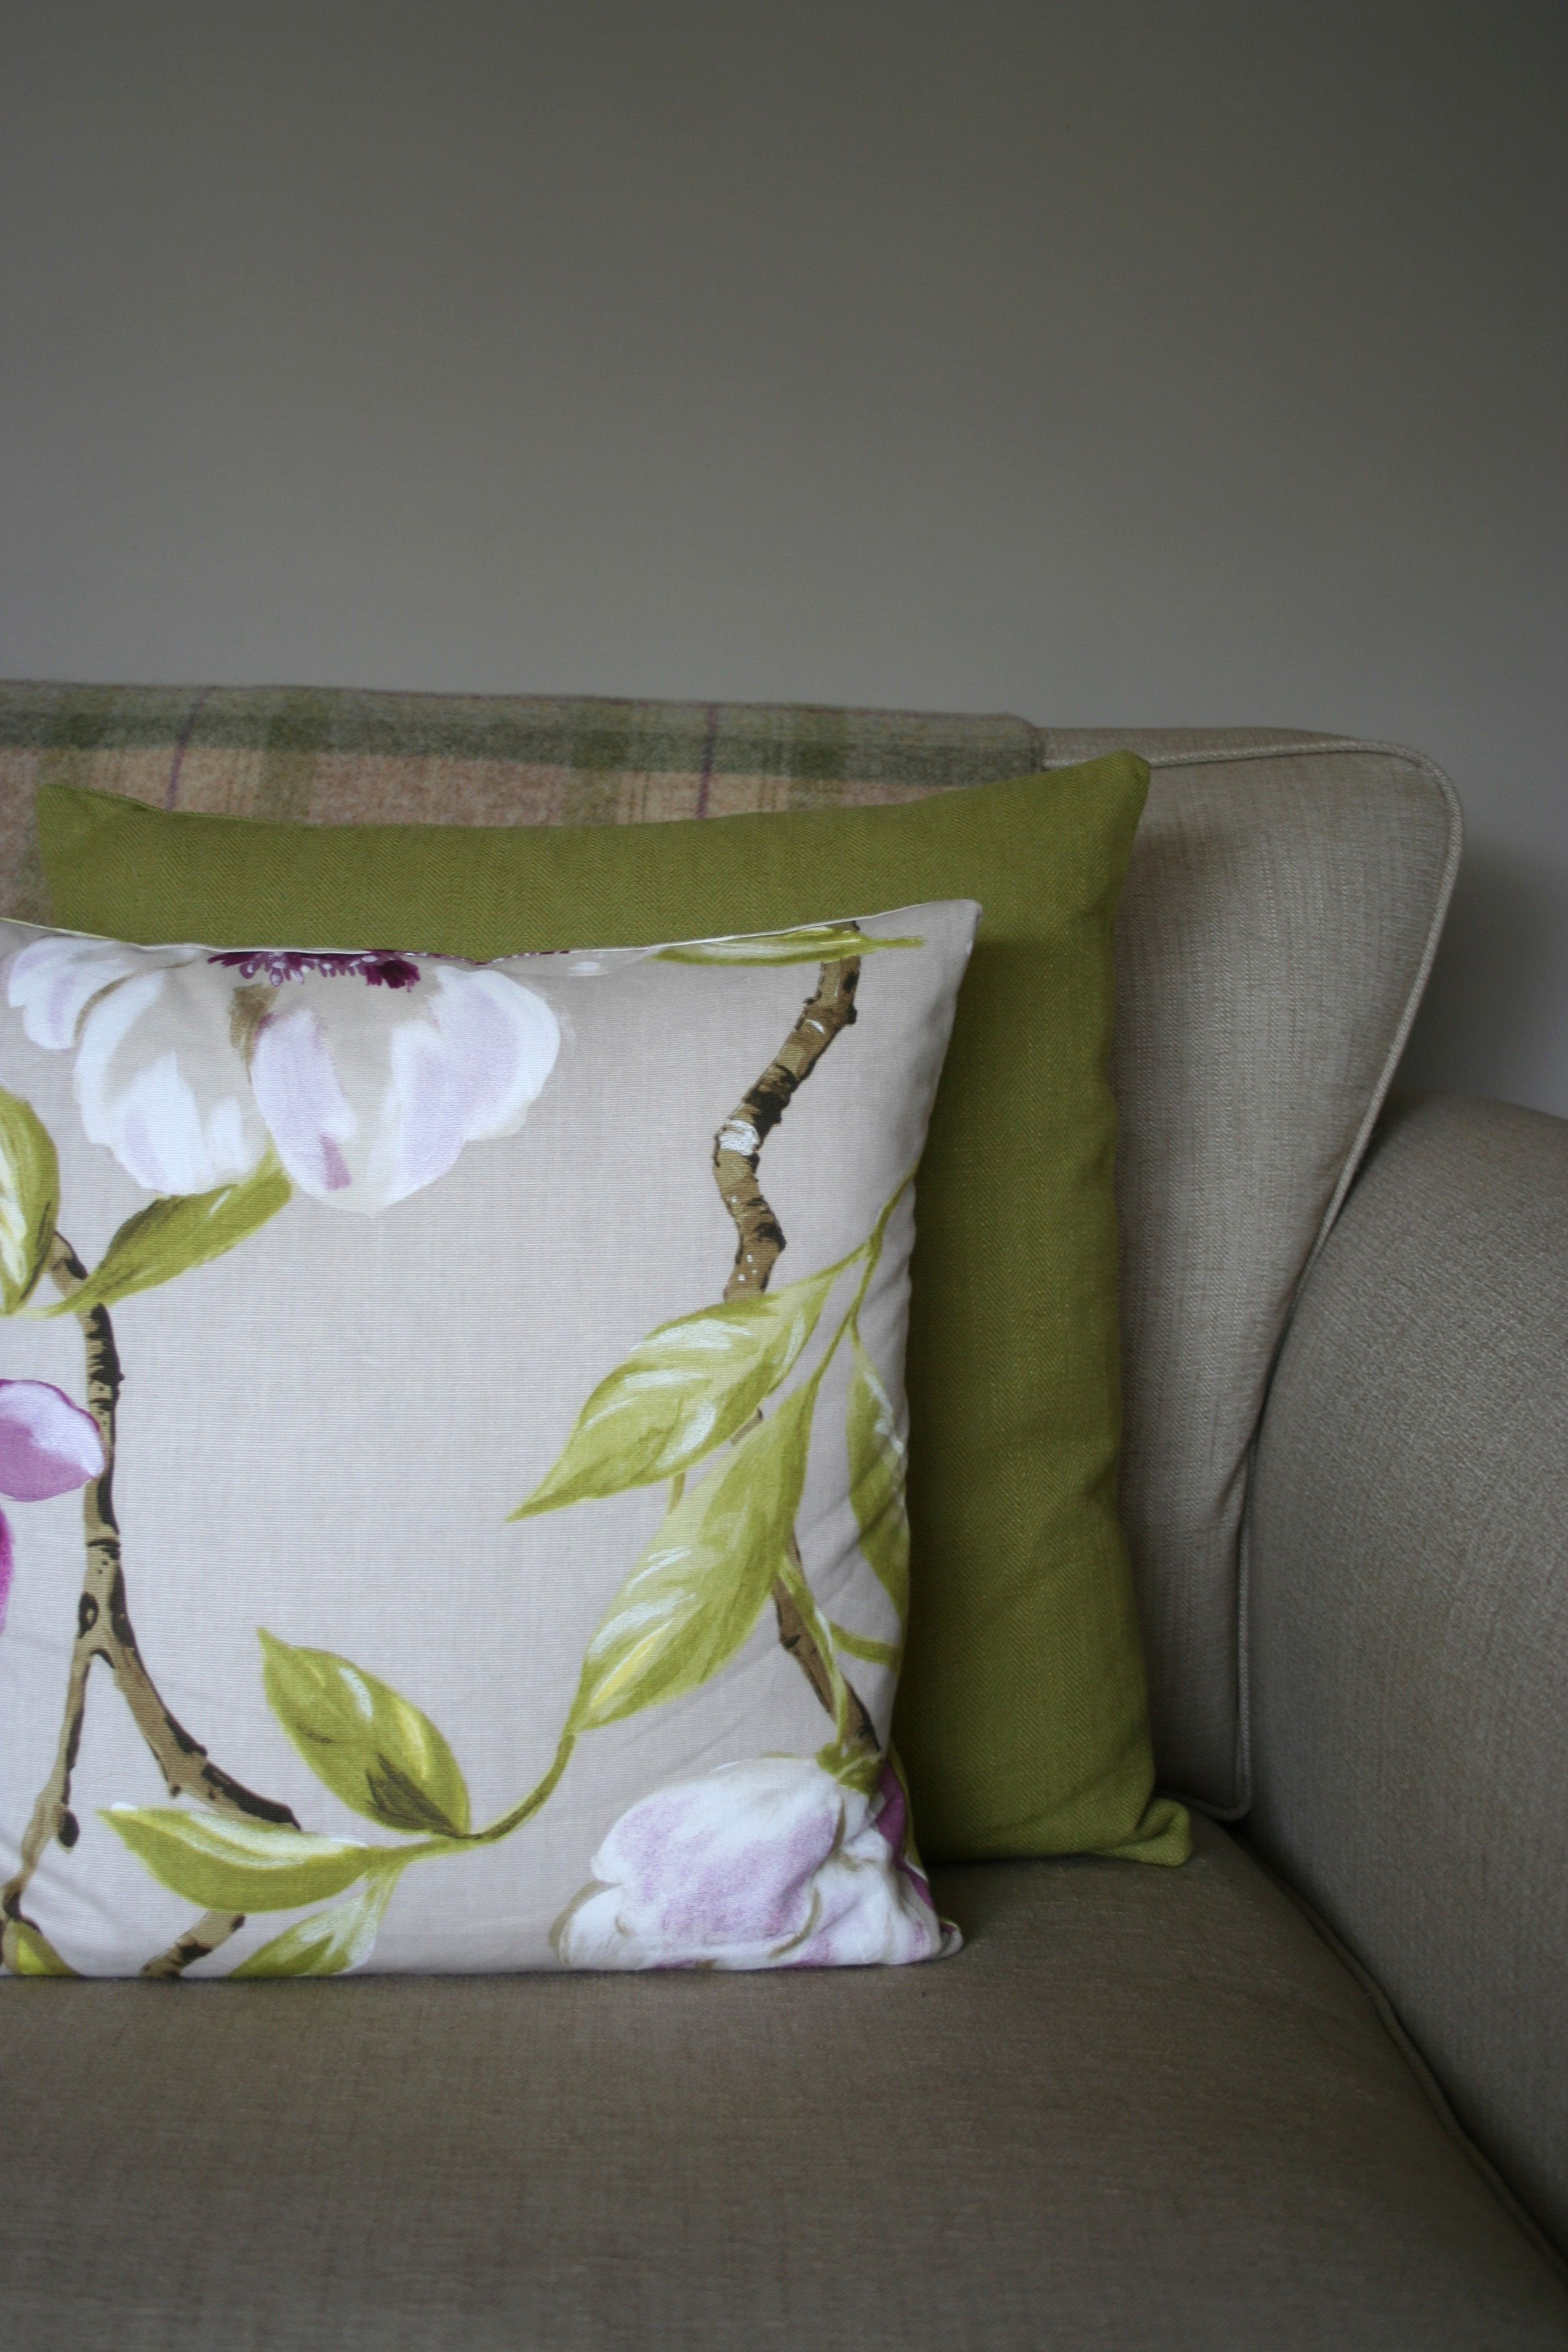 Floral cushions this was an bespoke design order for a customer who